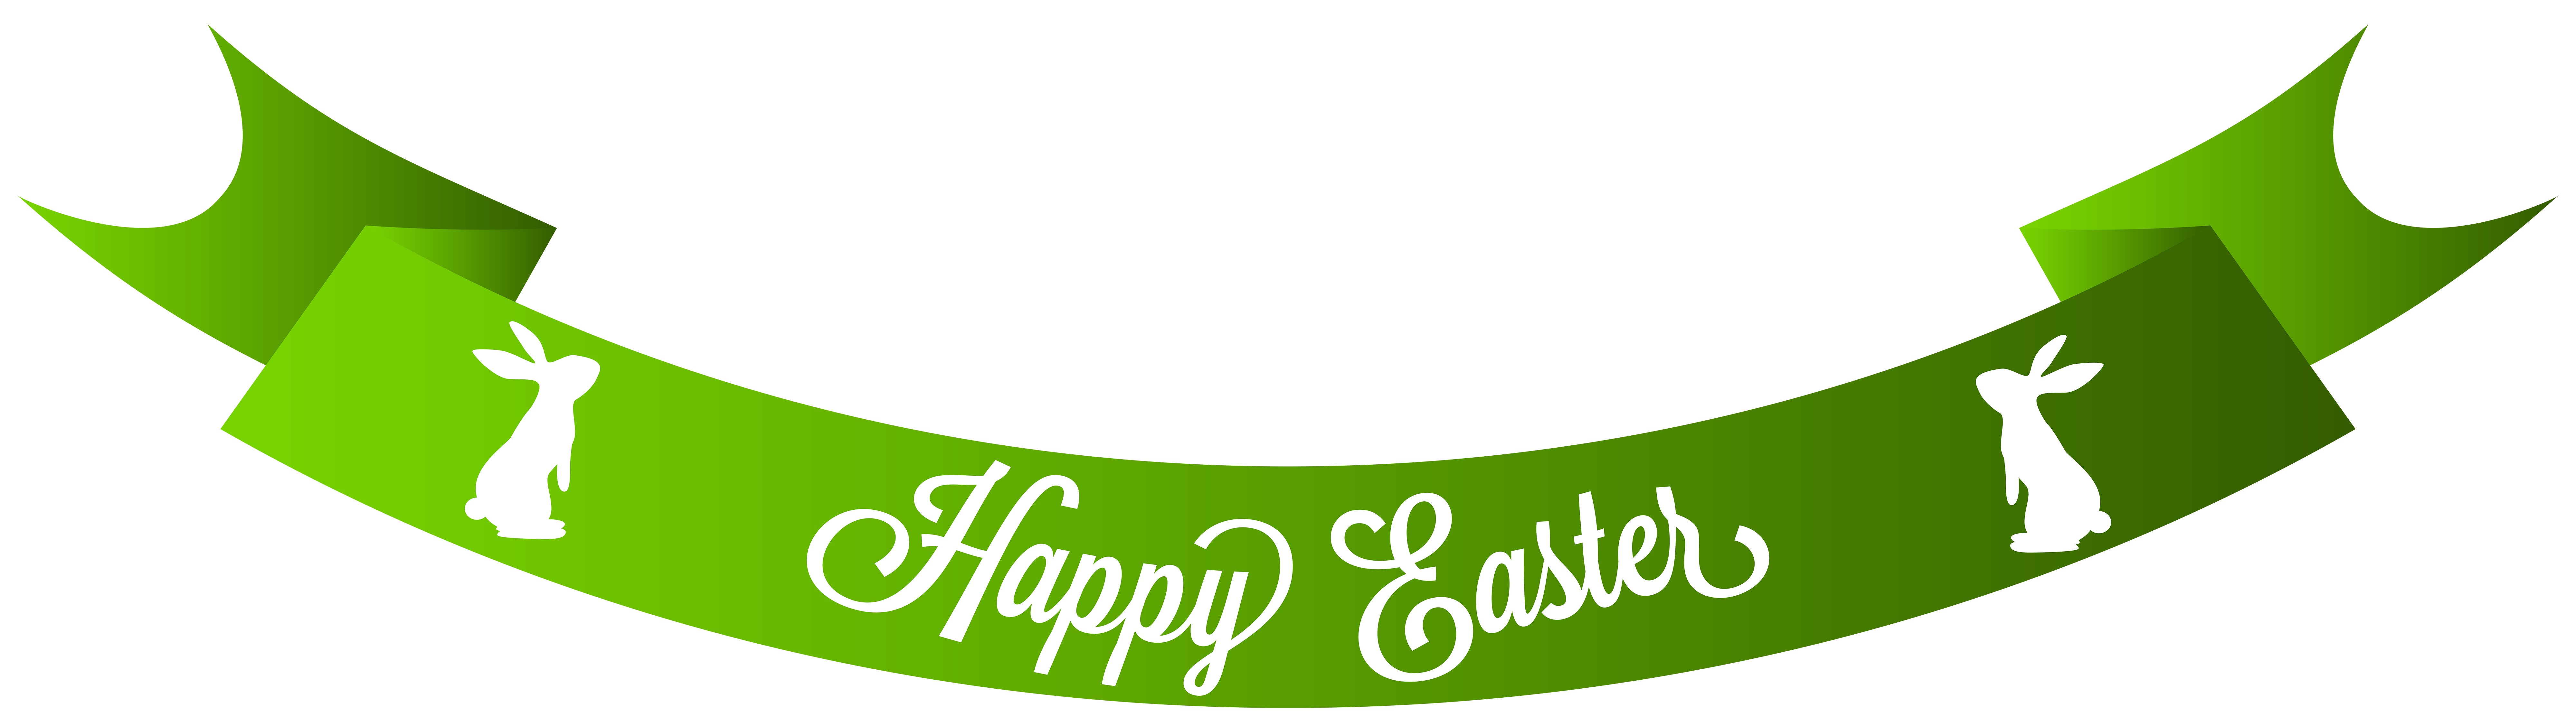 Green Happy Easter Banner PNG Clip Art Image.